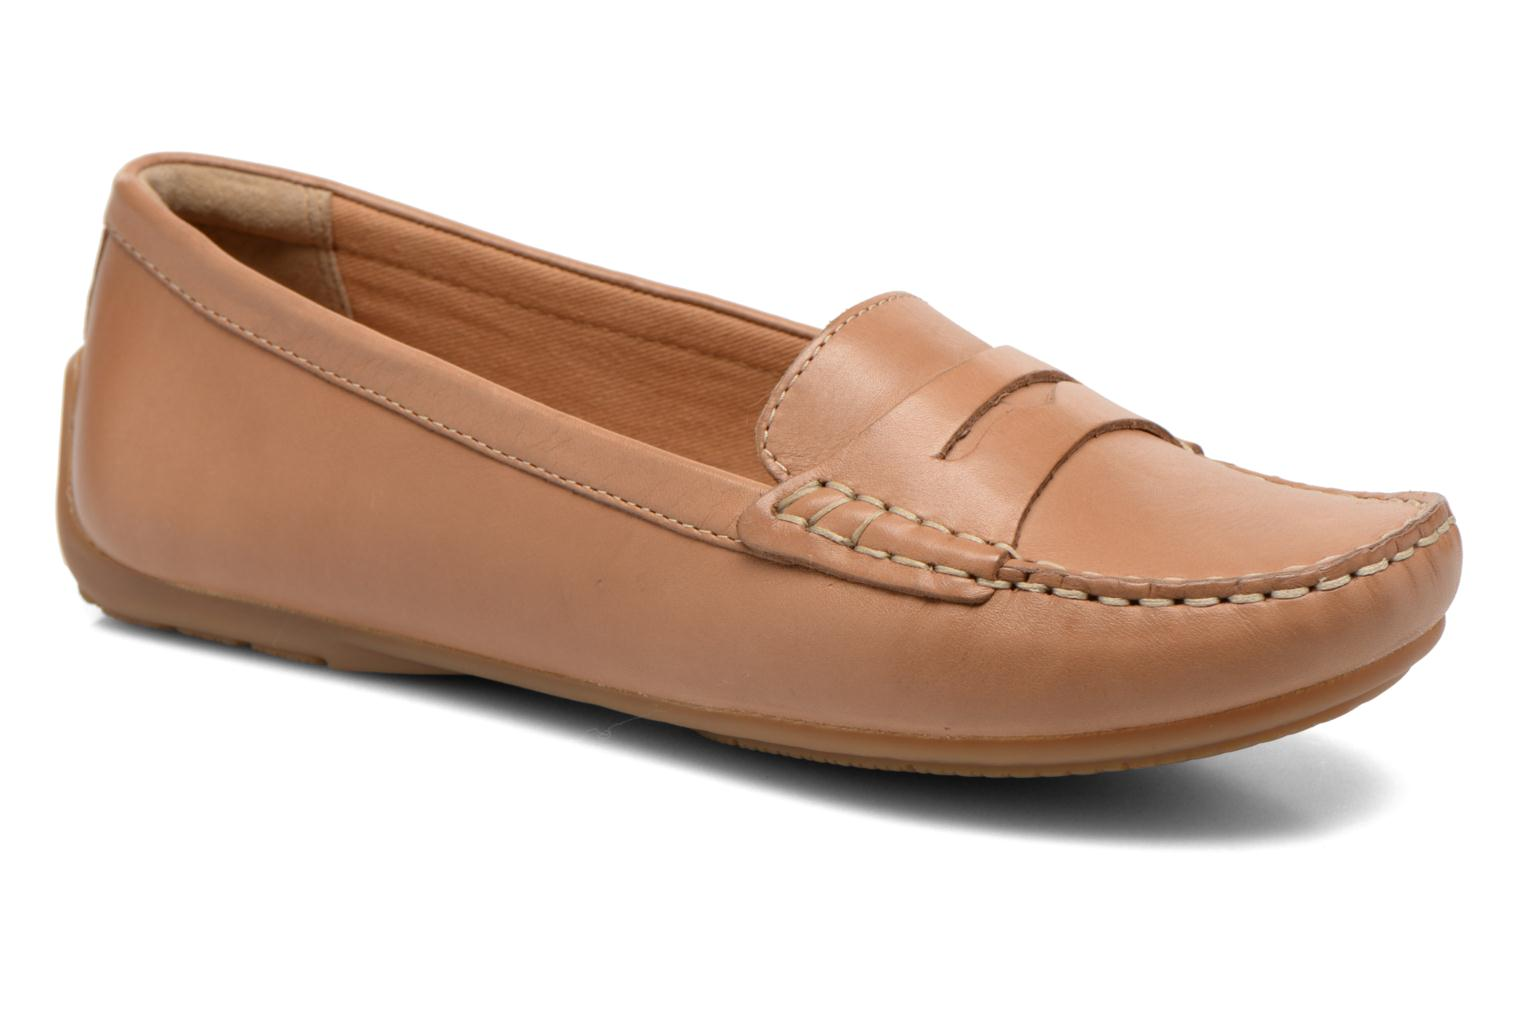 Marques Chaussure femme Clarks femme Doraville Nest Tan Leather